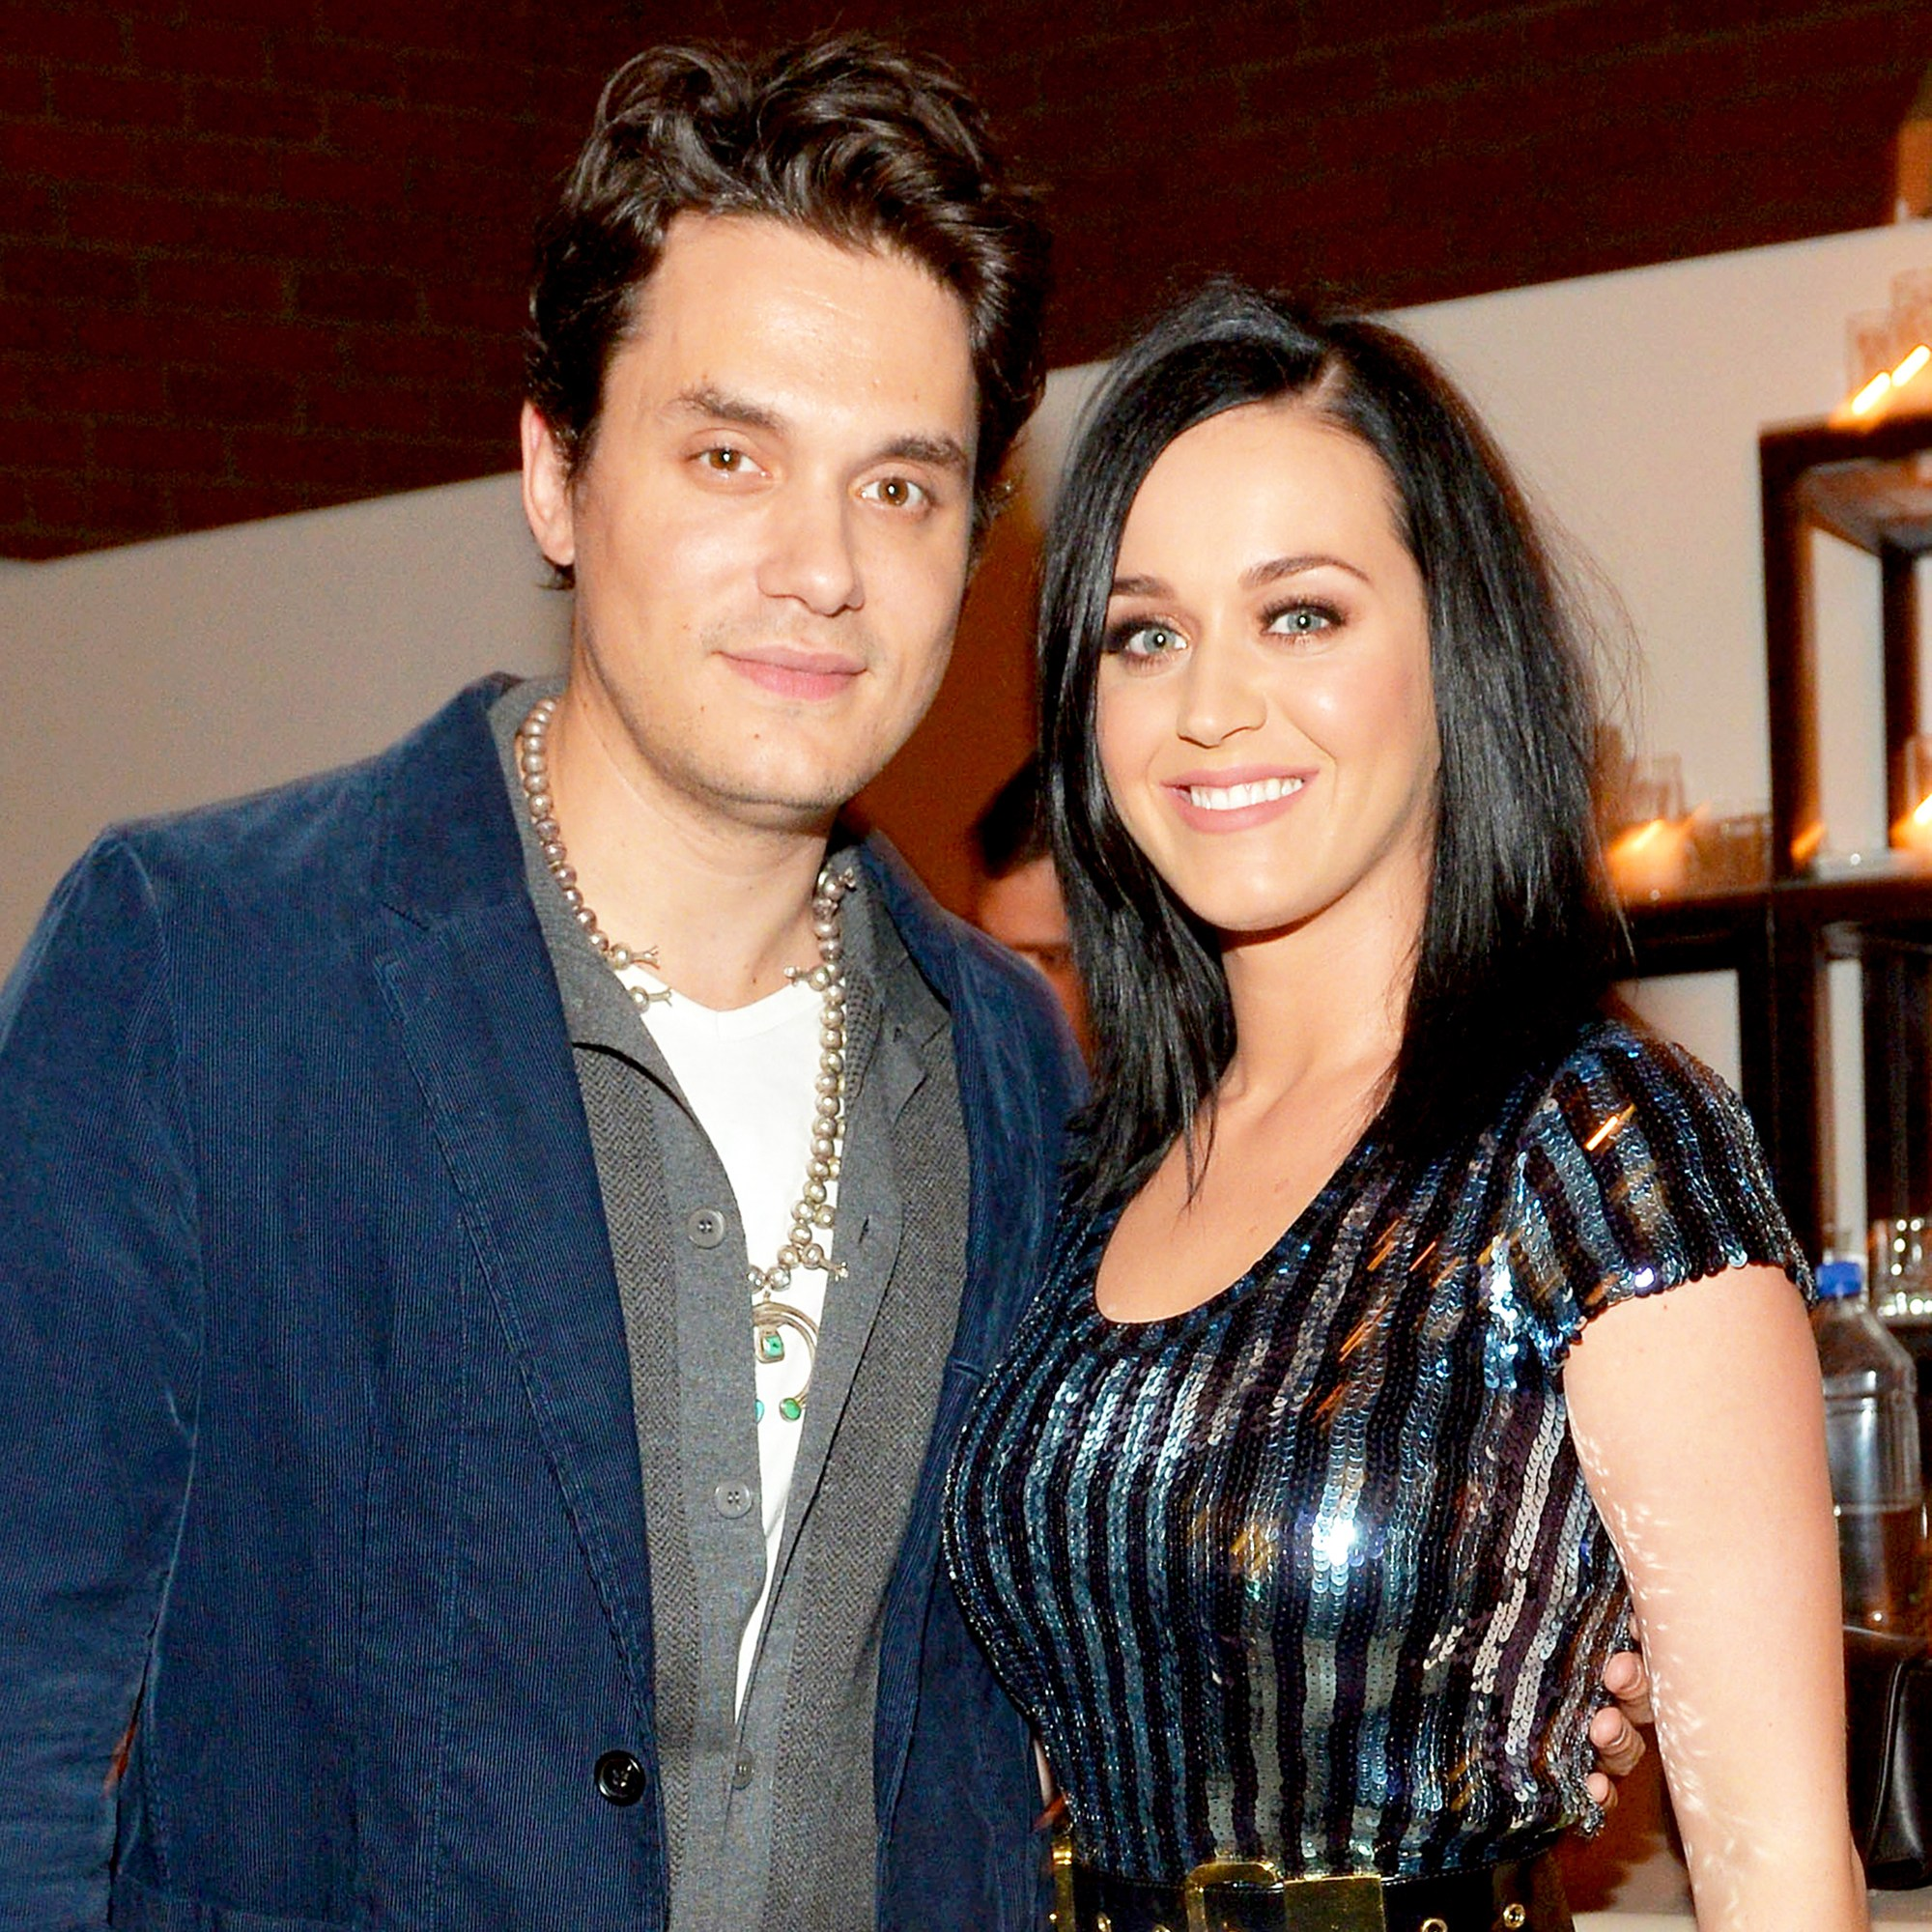 John Mayer and Katy Perry attend Hollywood Stands Up To Cancer Event with contributors American Cancer Society and Bristol Myers Squibb on January 28, 2014 in Culver City, California.